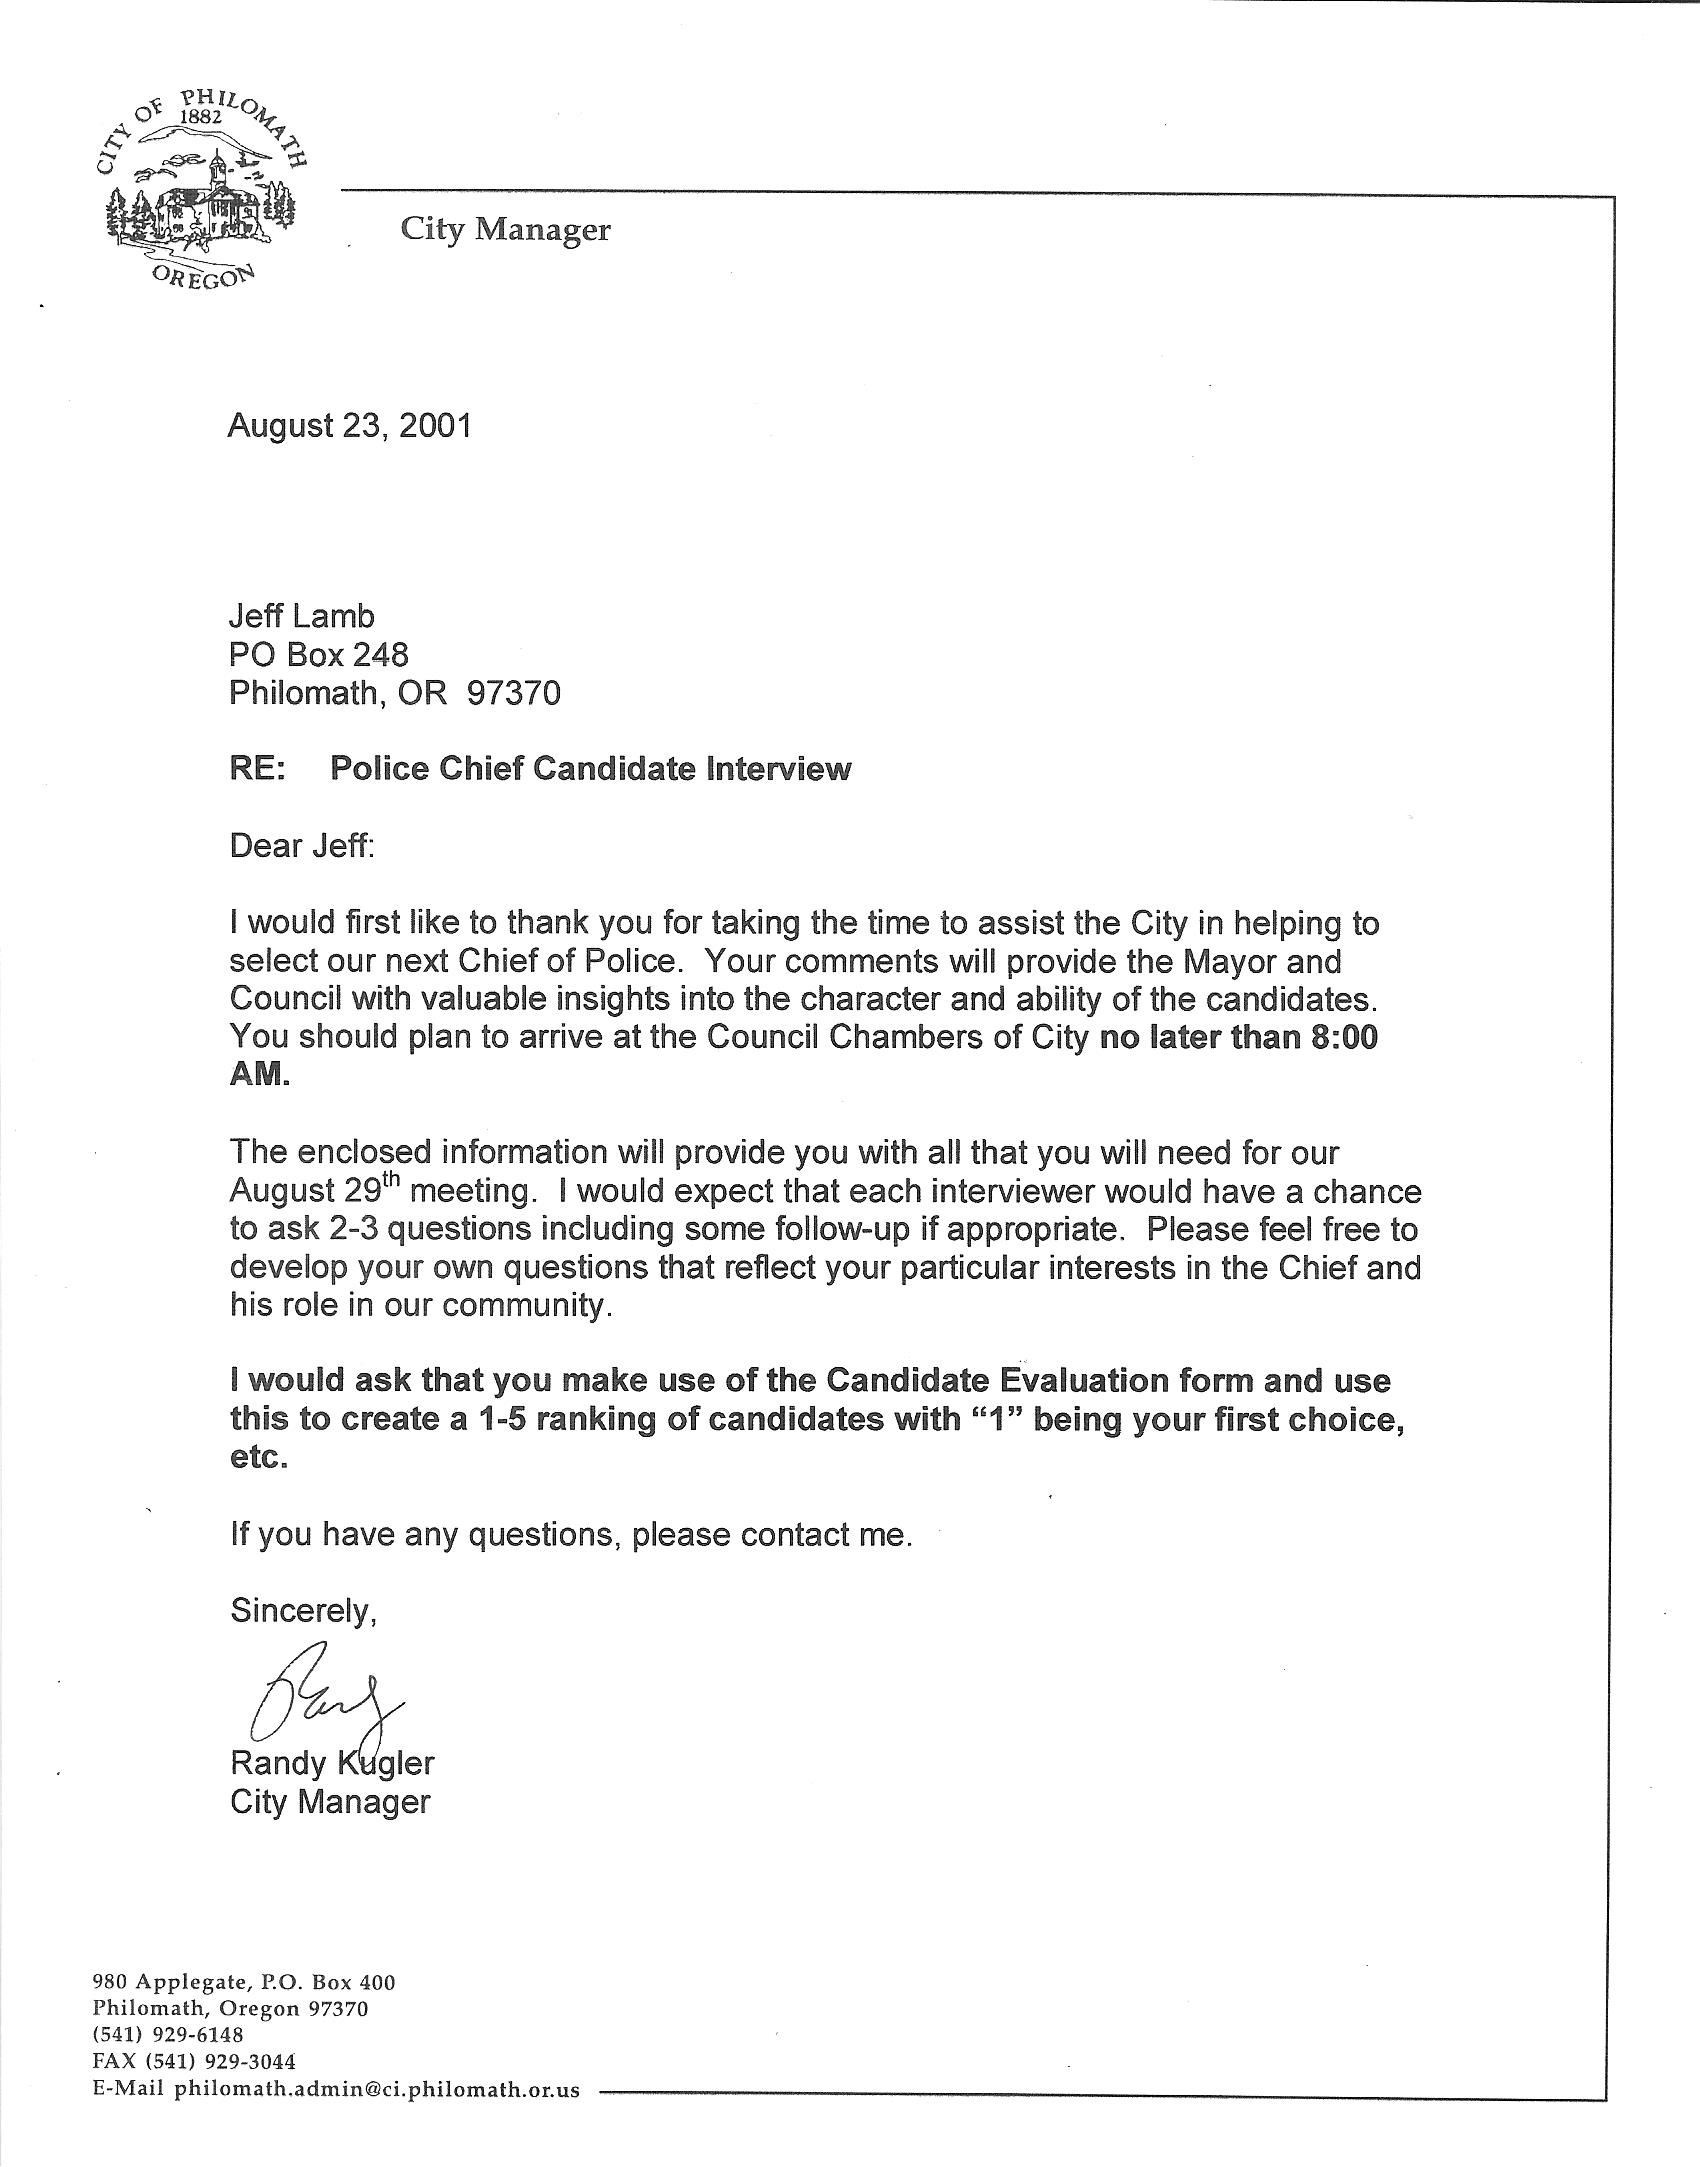 philomath community server new philomath police facility committee 8 23 01 thank you police selection 250x319 jpg